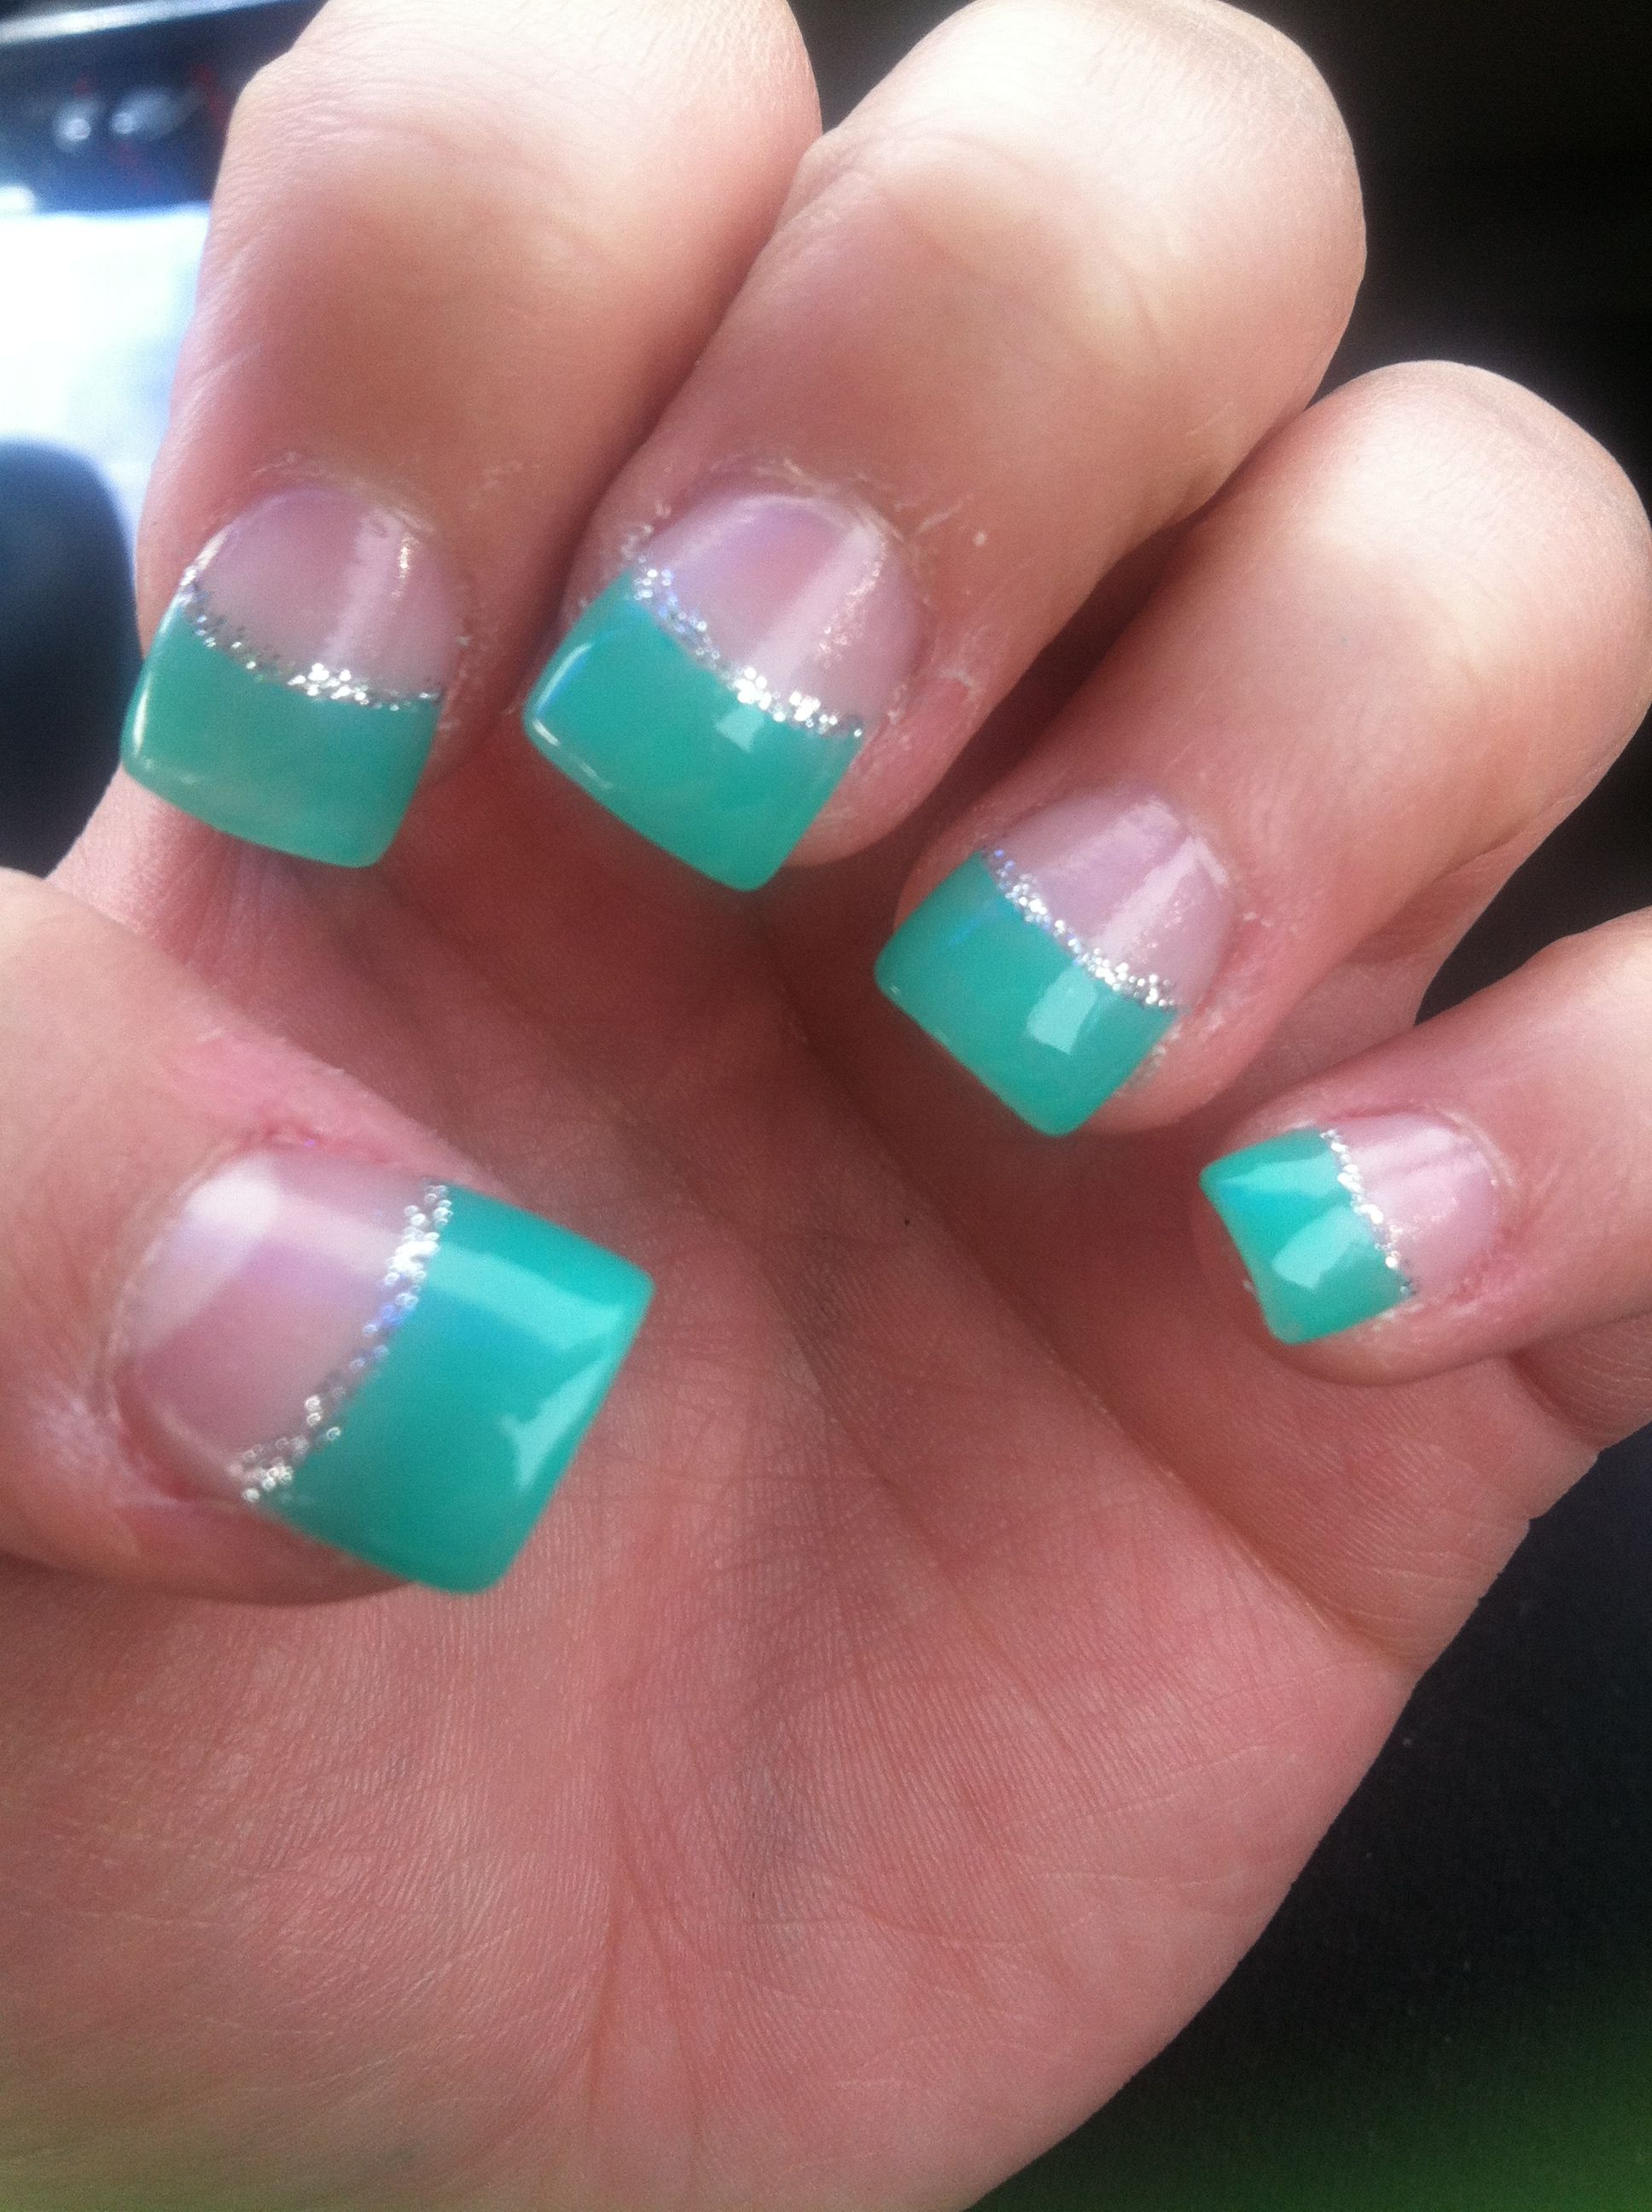 Acrylic nails teal ish grey sparkle lining french tips for Acrylic nails walmart salon